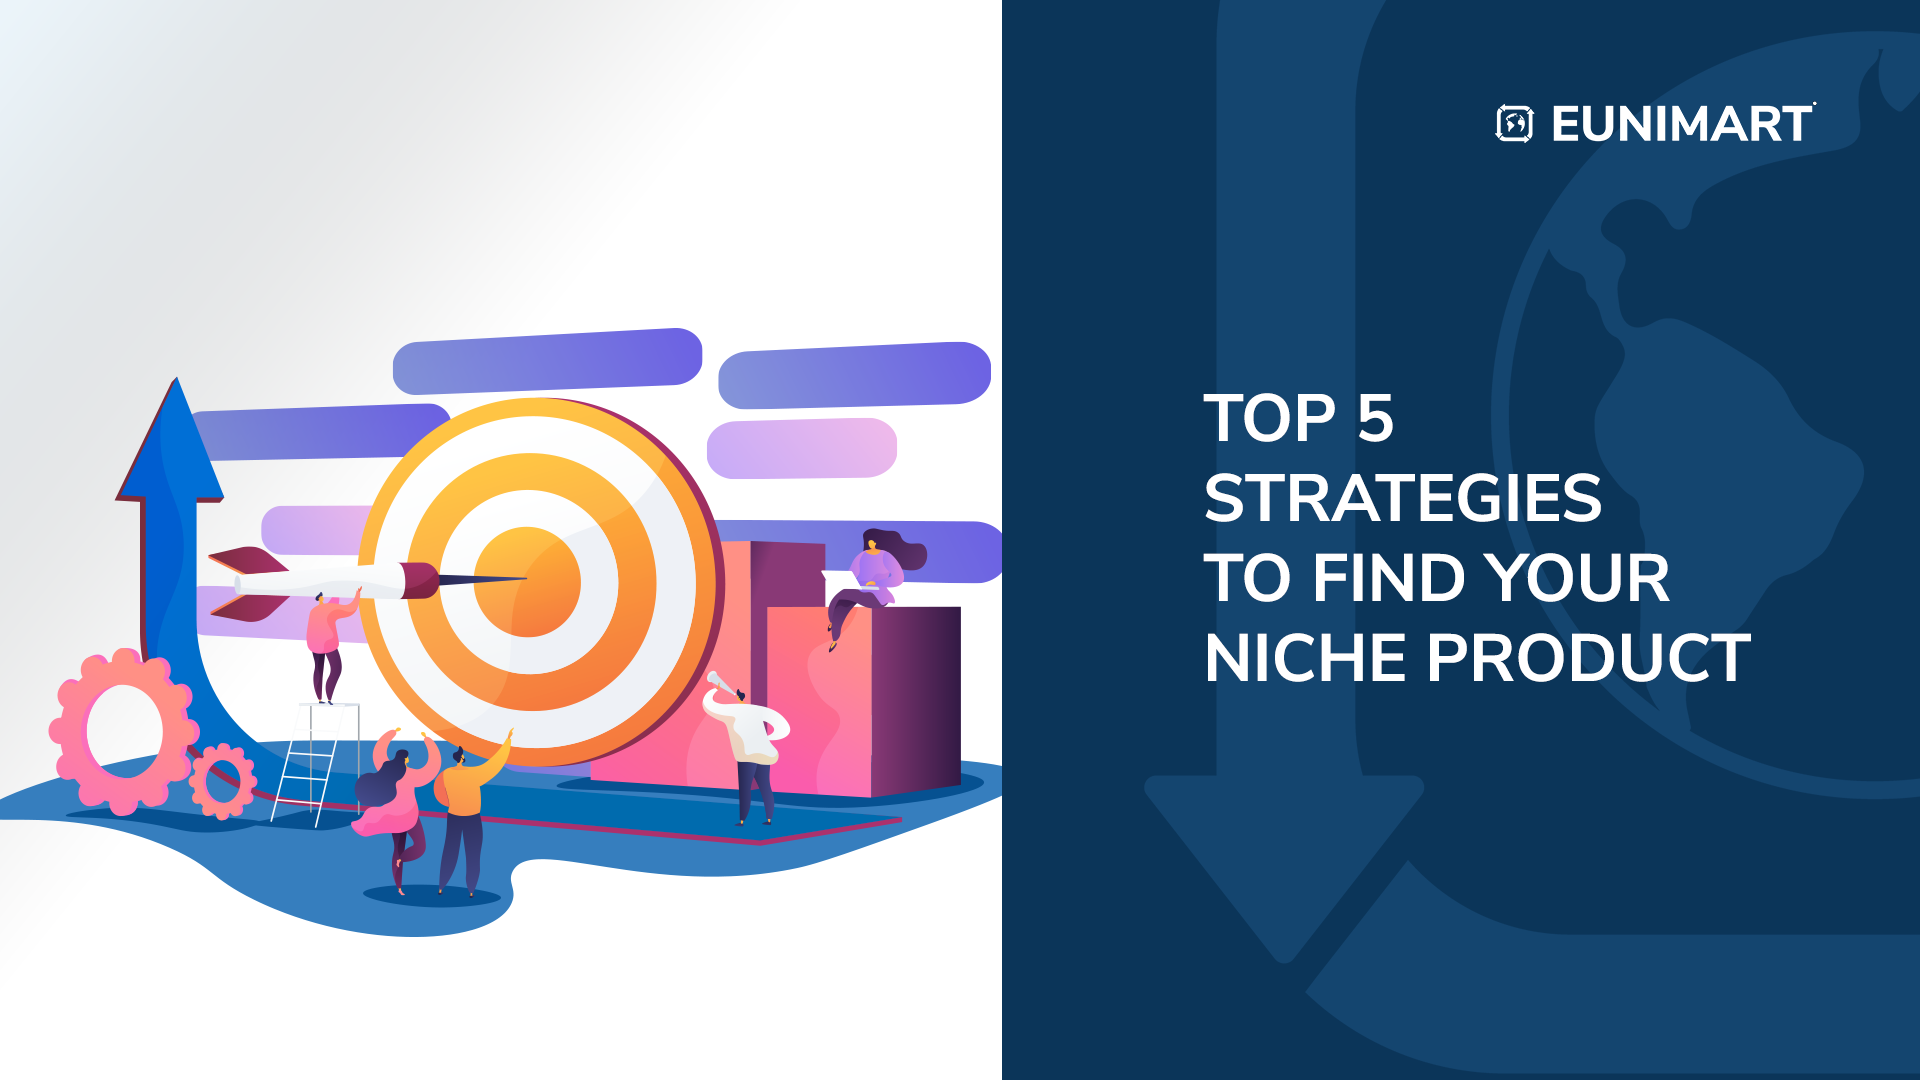 TOP 5 STRATEGIES TO FIND YOUR NICHE PRODUCT